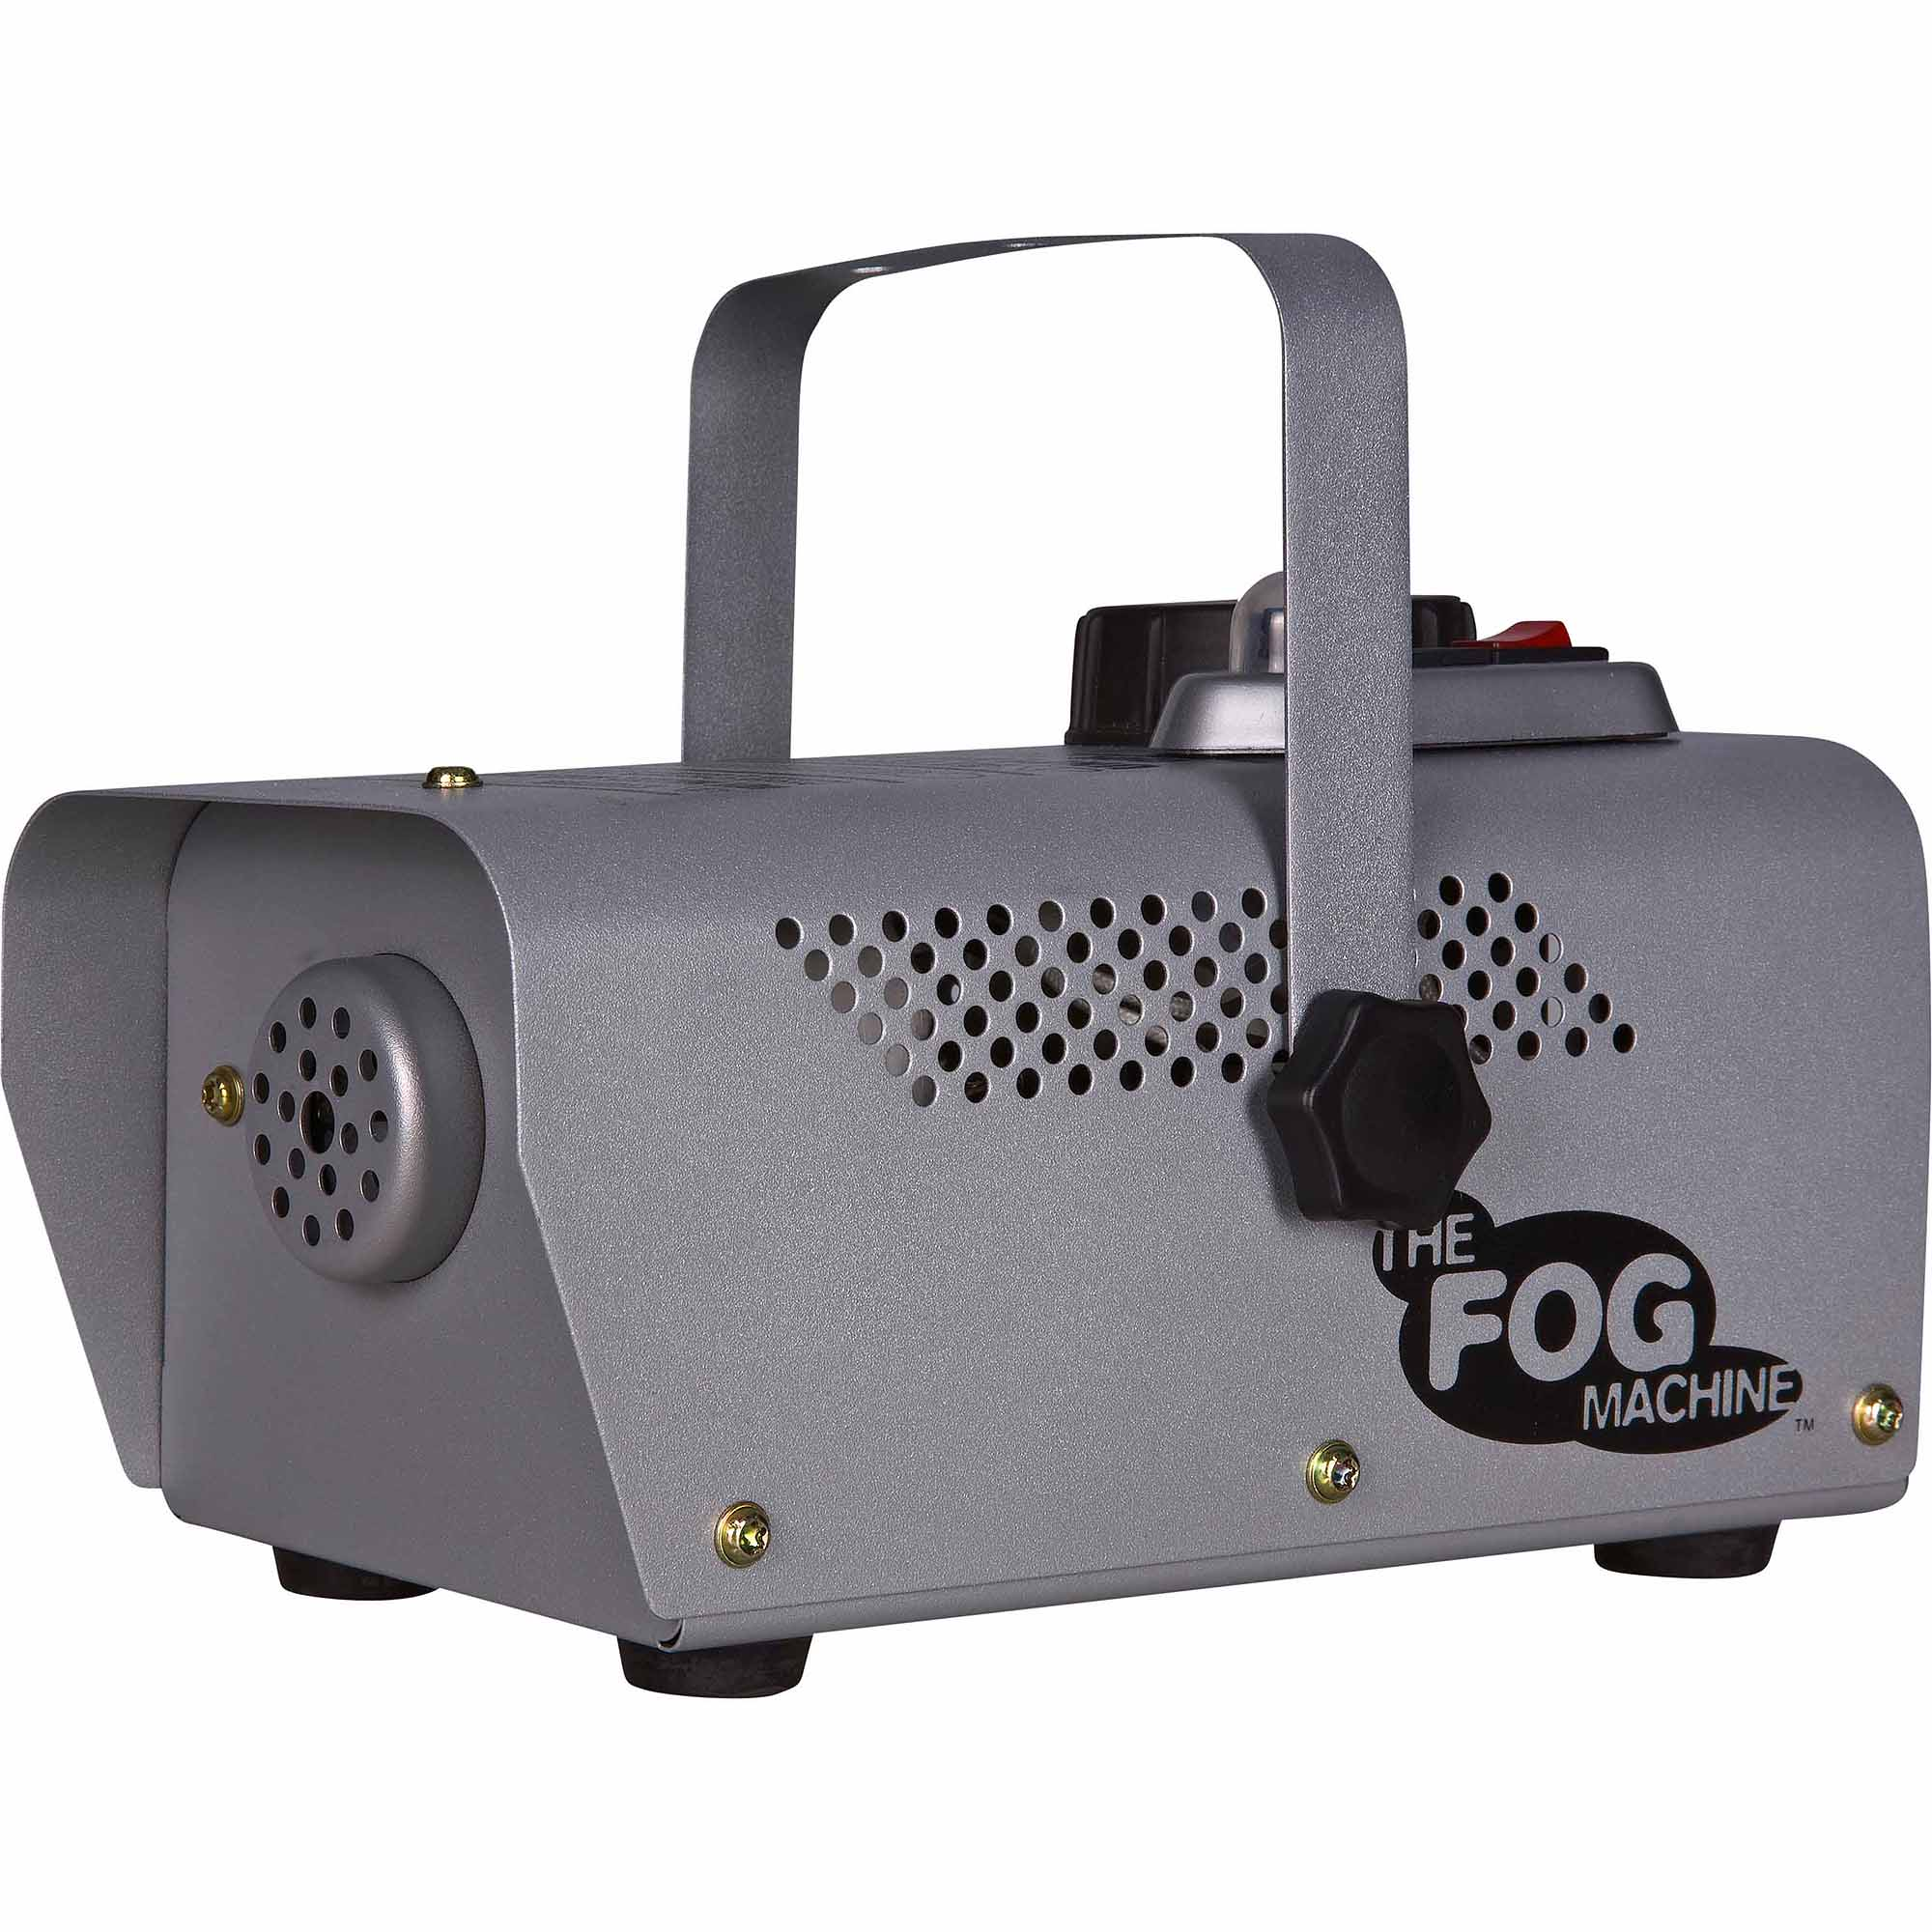 15e3e9ae 5153 48d2 b6a4 a360477a7908_1.0beda09dc2650543113b36eb3789b92d the fog machine with remote 400w by gemmy industries walmart com fog machine remote wiring diagram at aneh.co